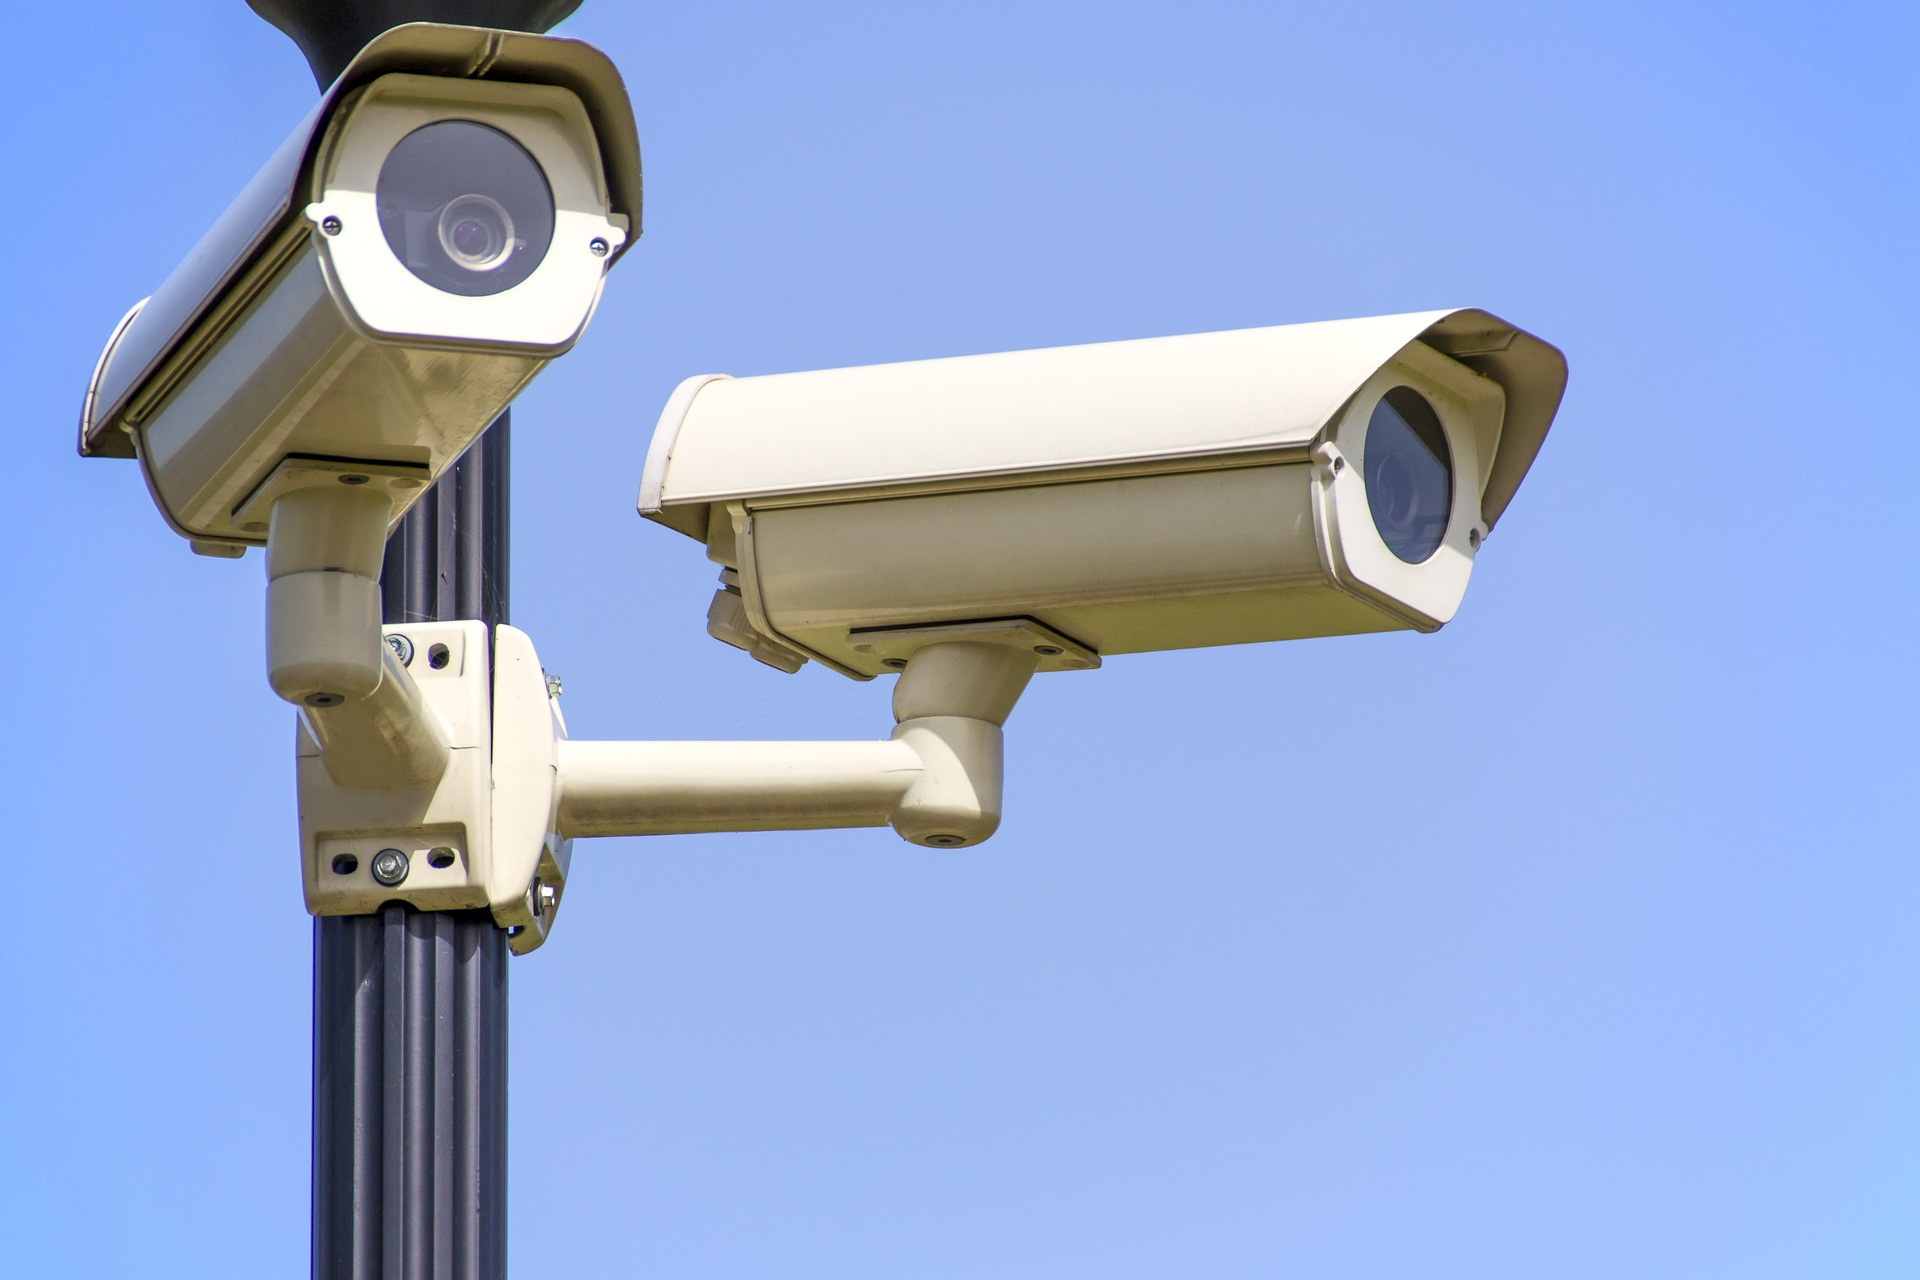 A picture of two CCTV cameras